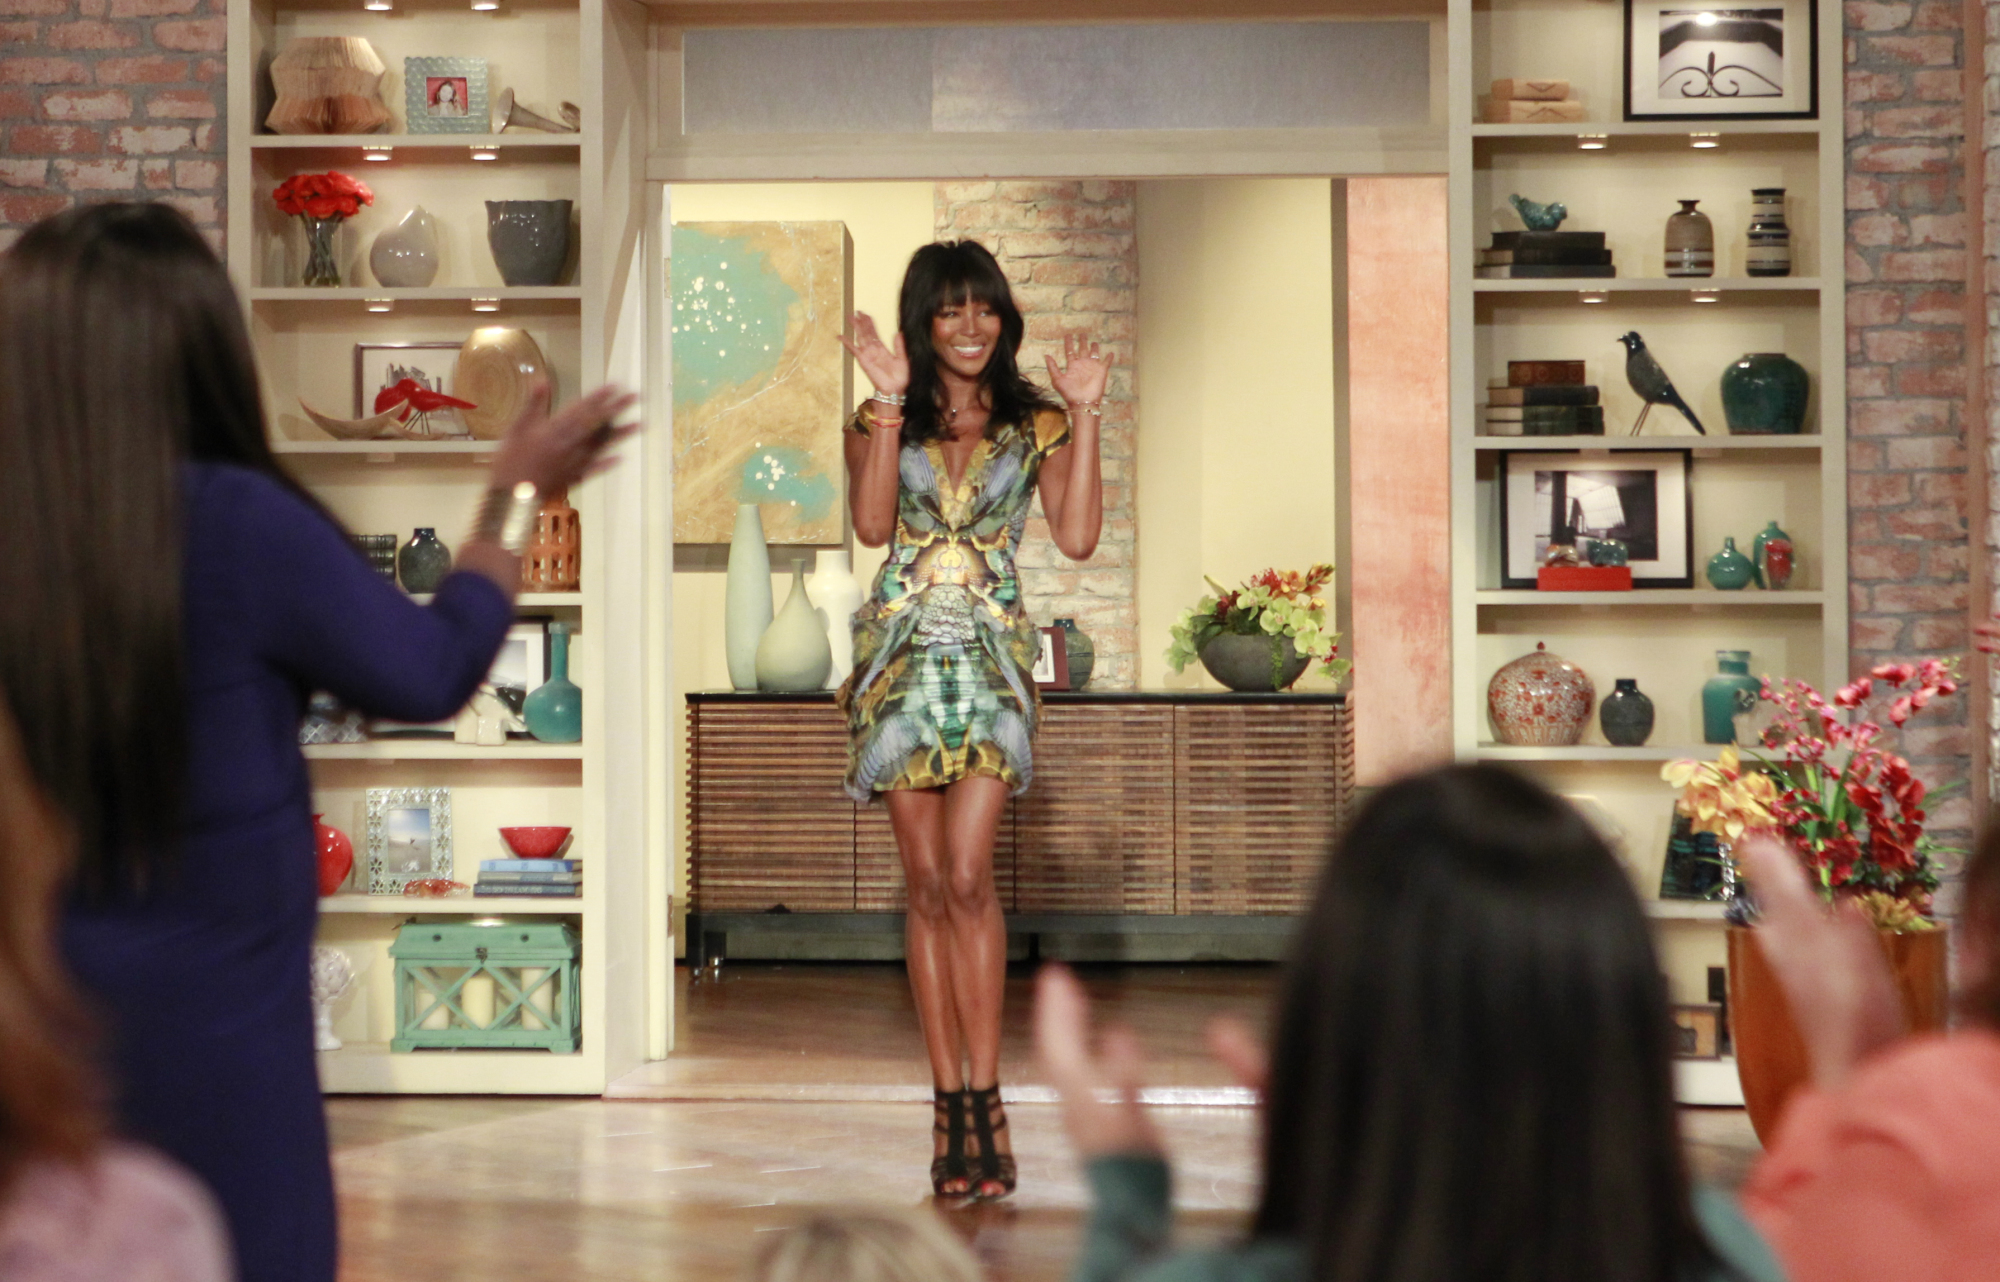 5. Naomi Campbell made a dramatic entrance!